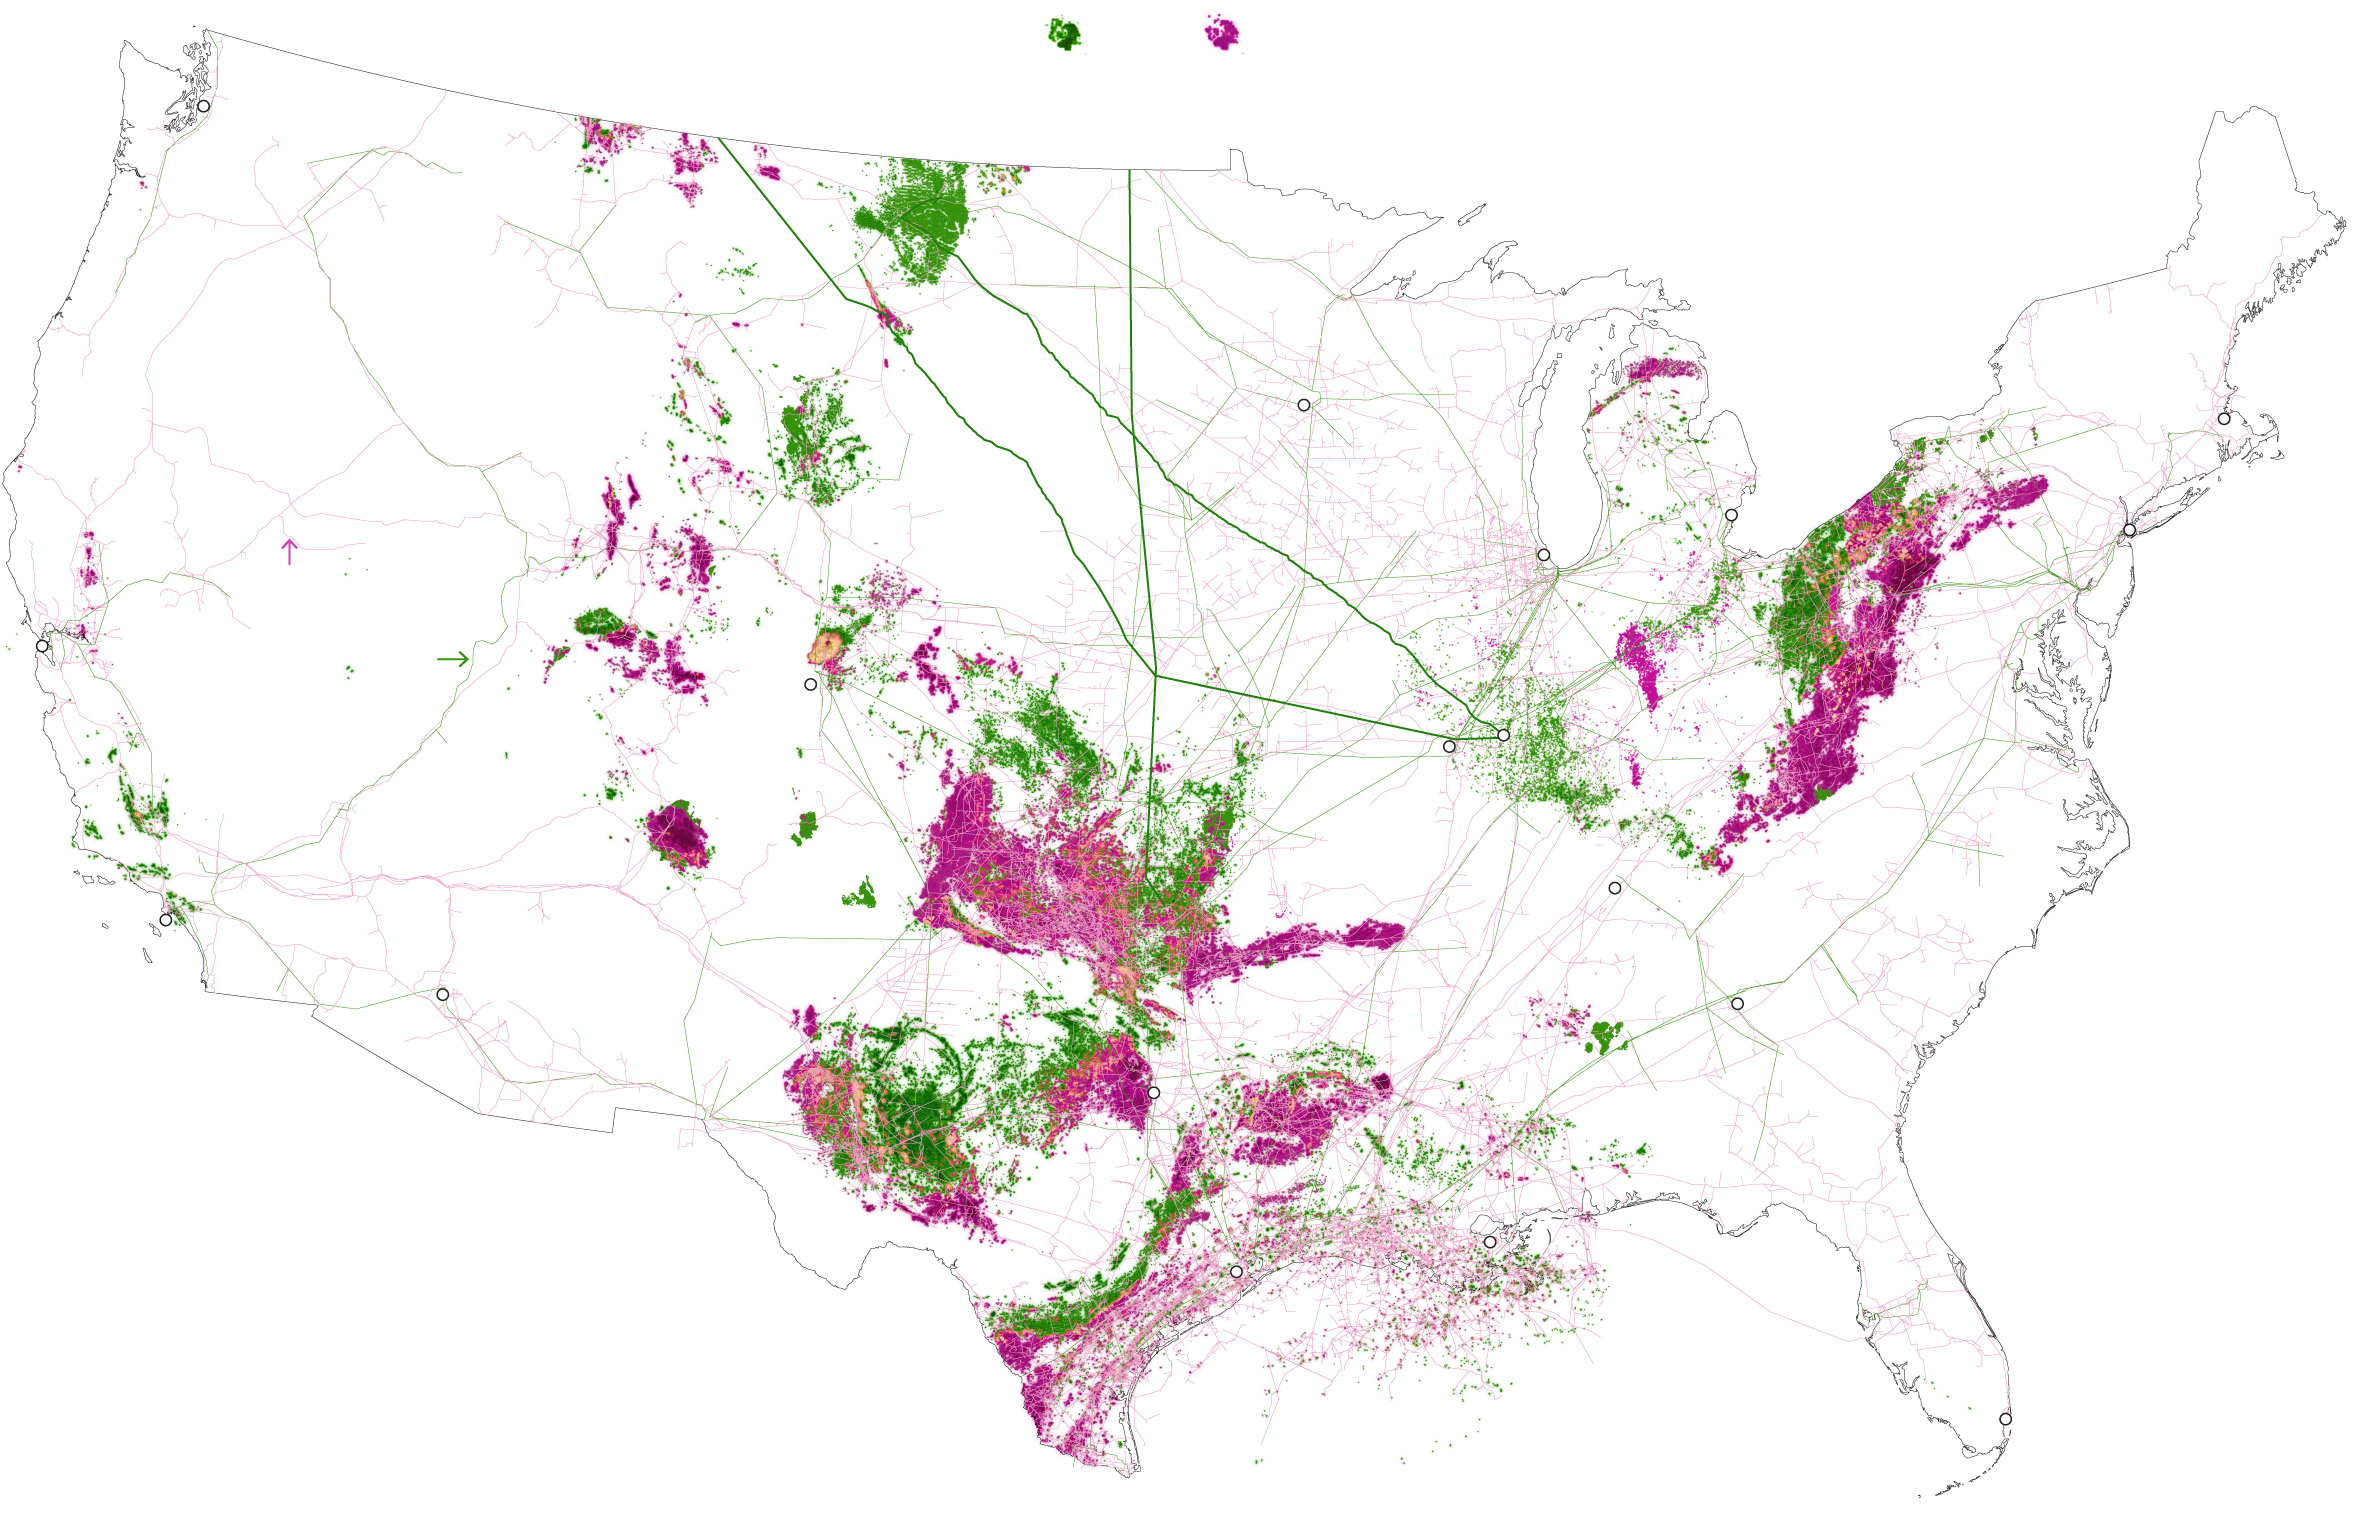 The United States of oil and gas.